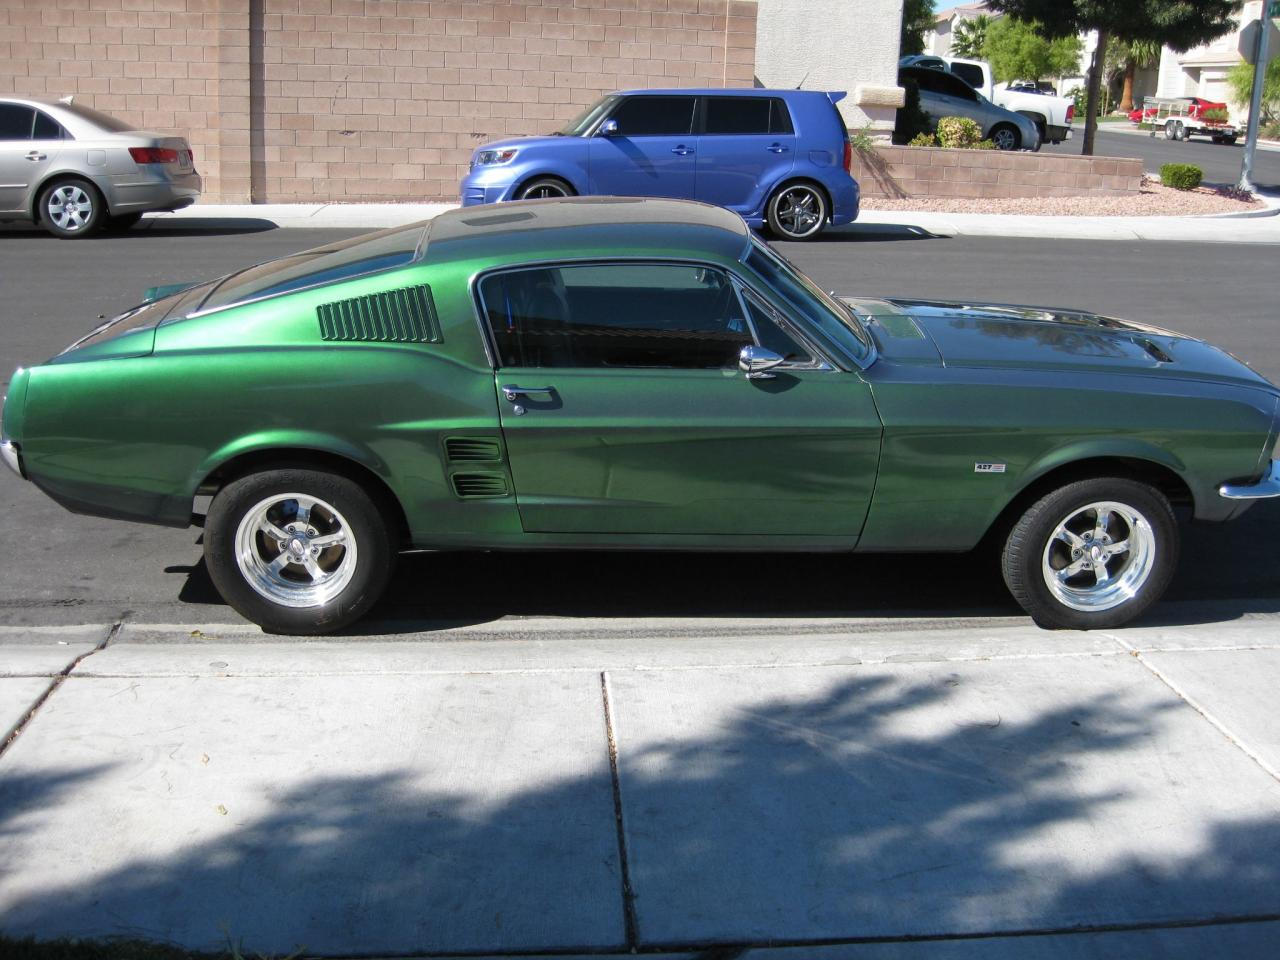 1967 mustang s code gta restomod for sale